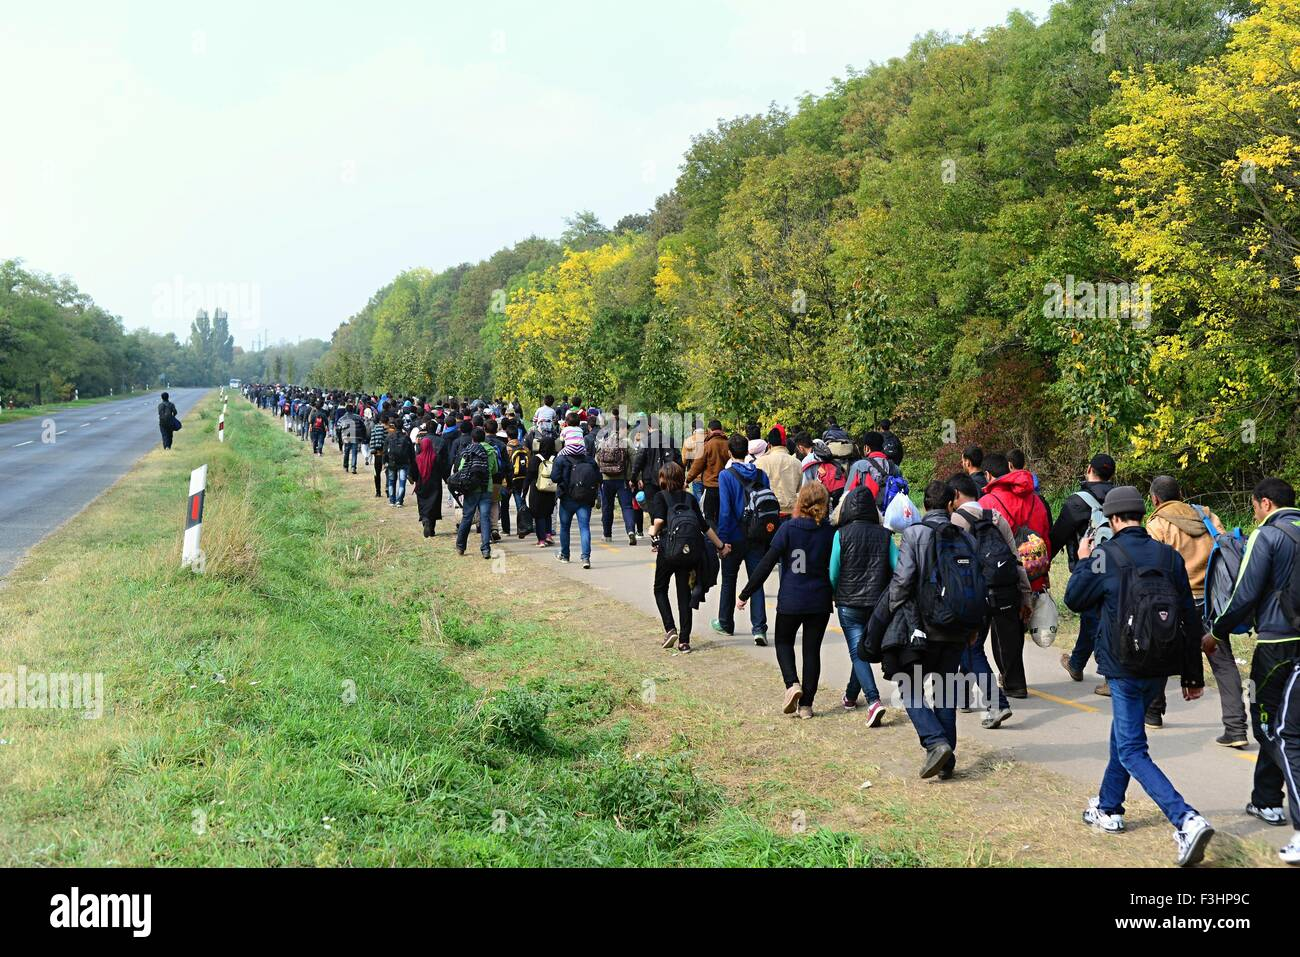 October 6,2015; Hegyeshalom in Hungary. Group of refugees leaving Hungary. They came to Hegyeshalom by train and - Stock Image